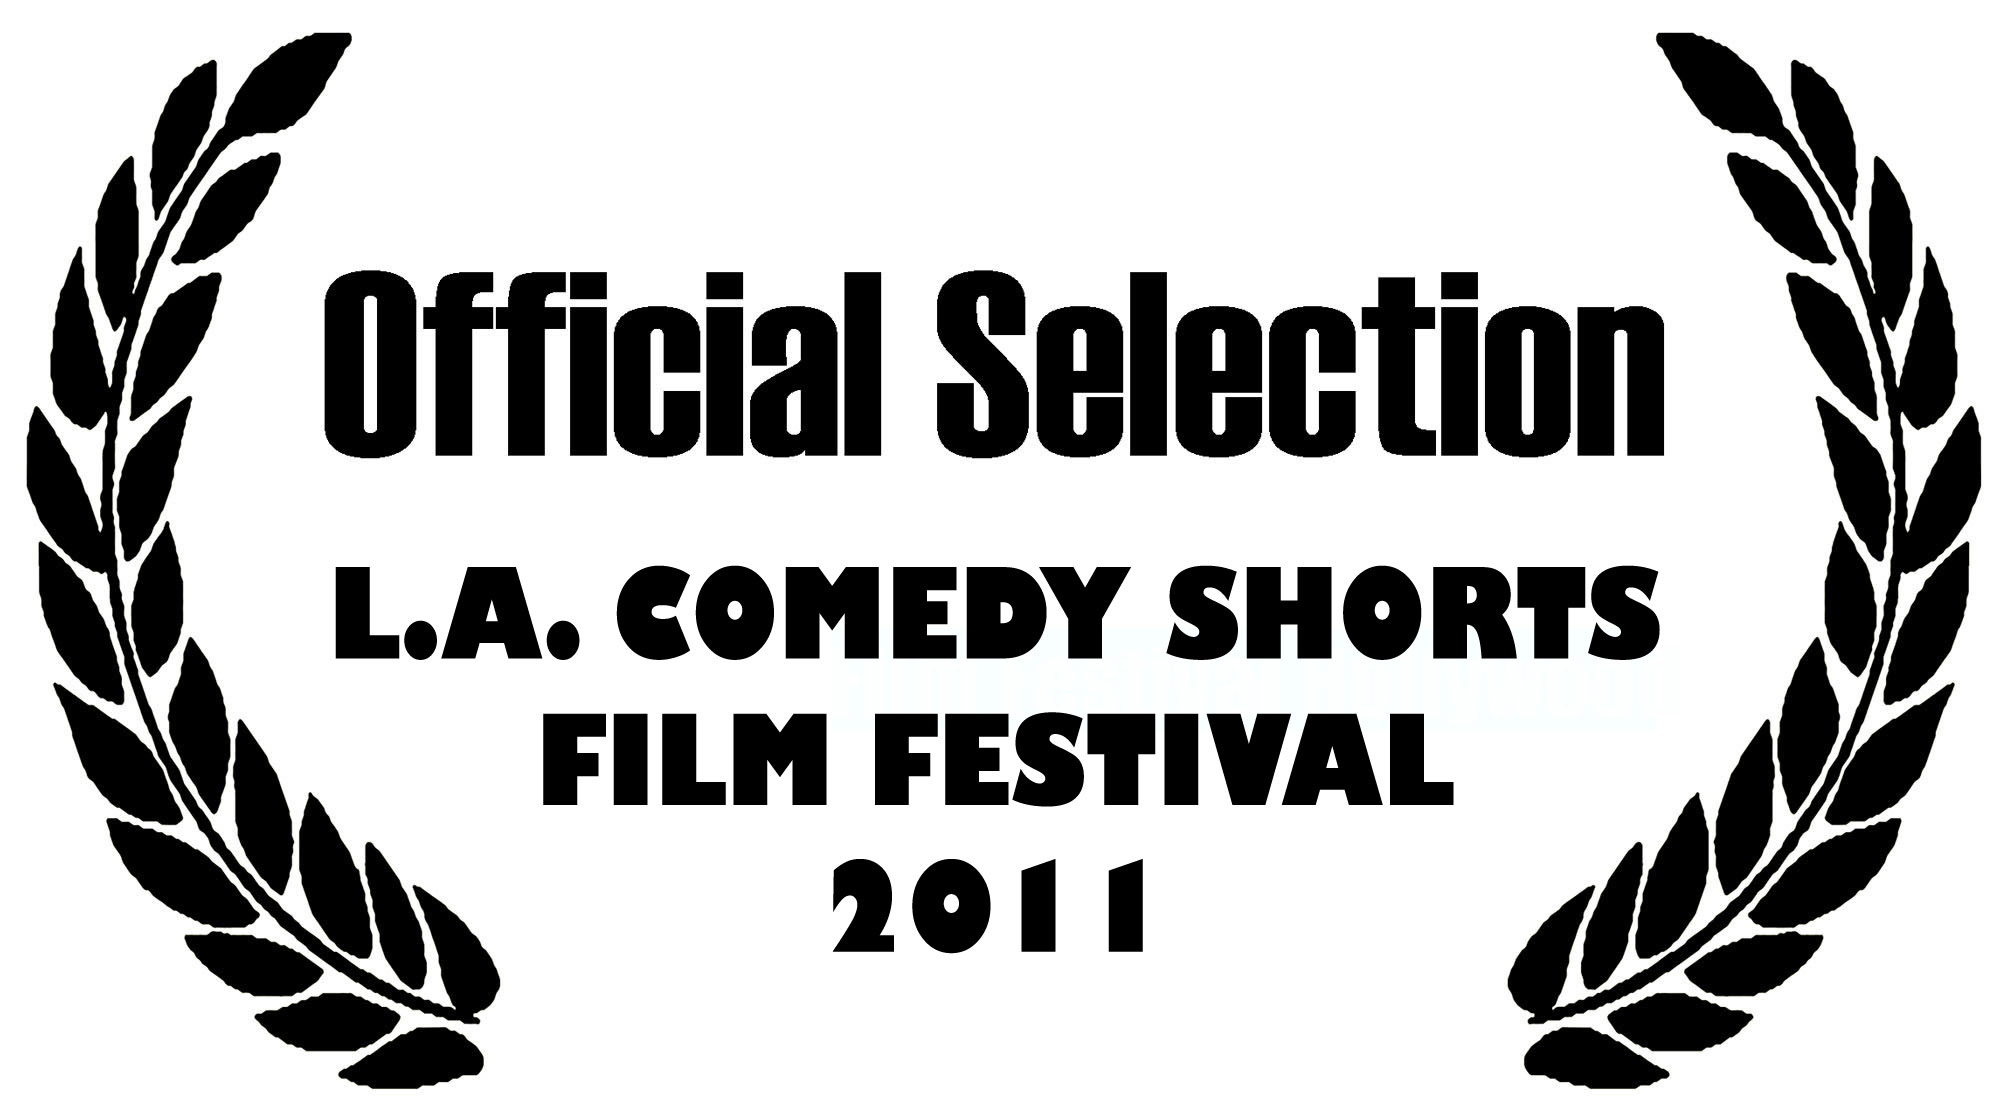 The Eggie Files Nominated for L.A. Comedy Shorts Film Festival